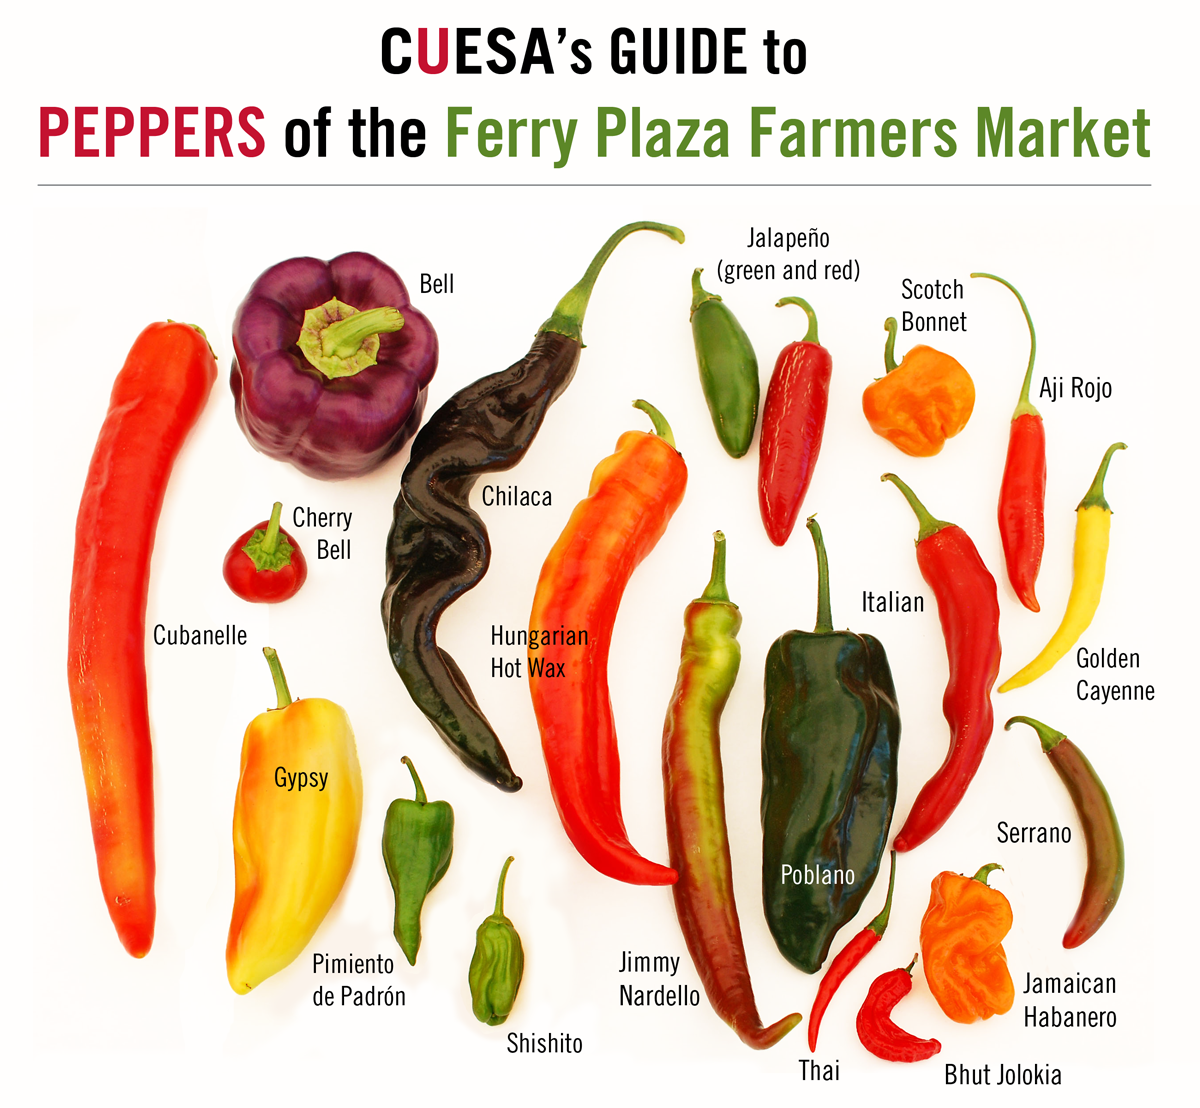 CUESA Guide to Peppers of the Ferry Plaza Farmers Market